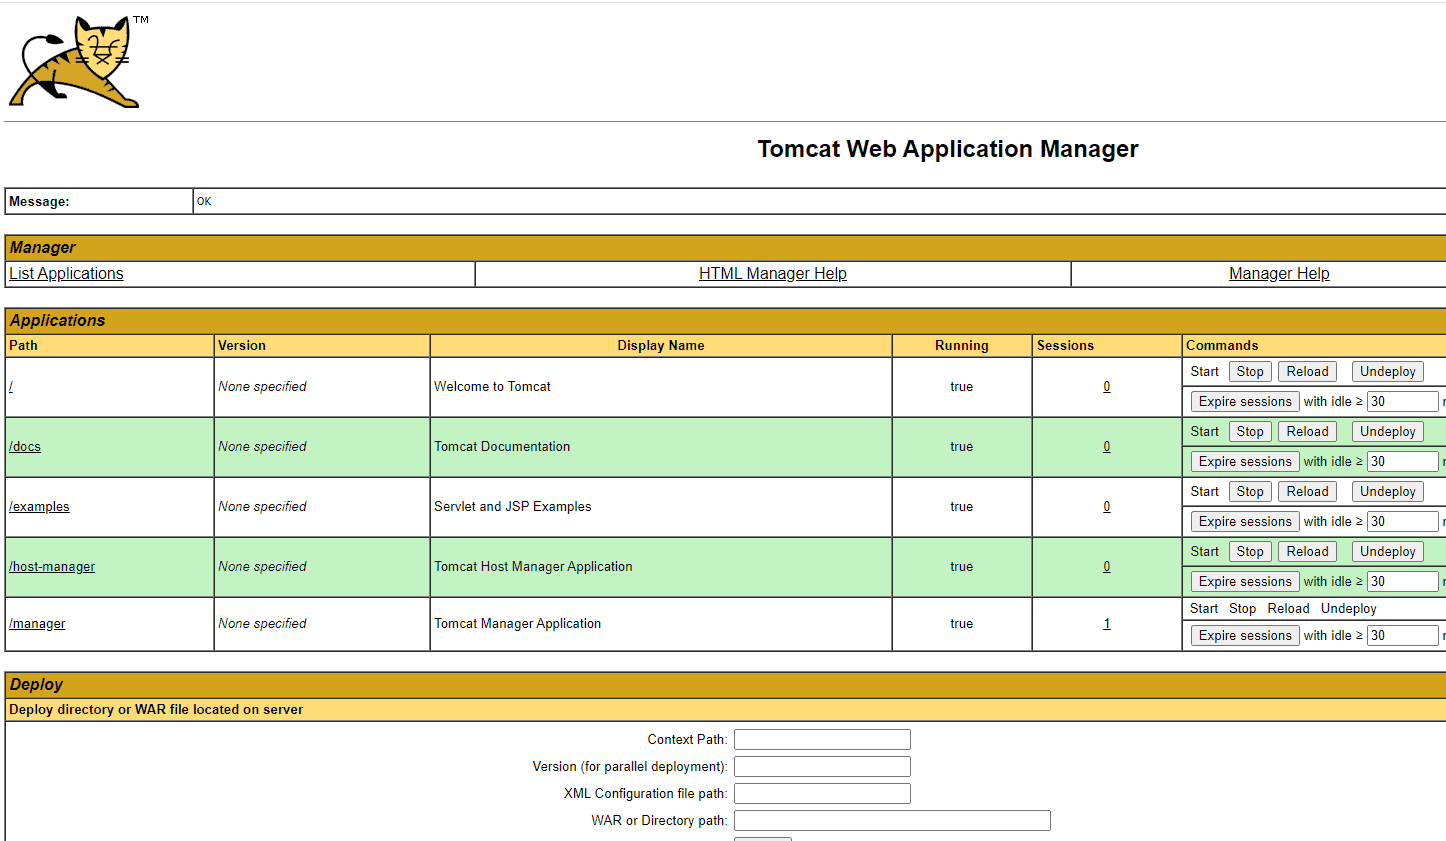 tomcat-web-application-manager